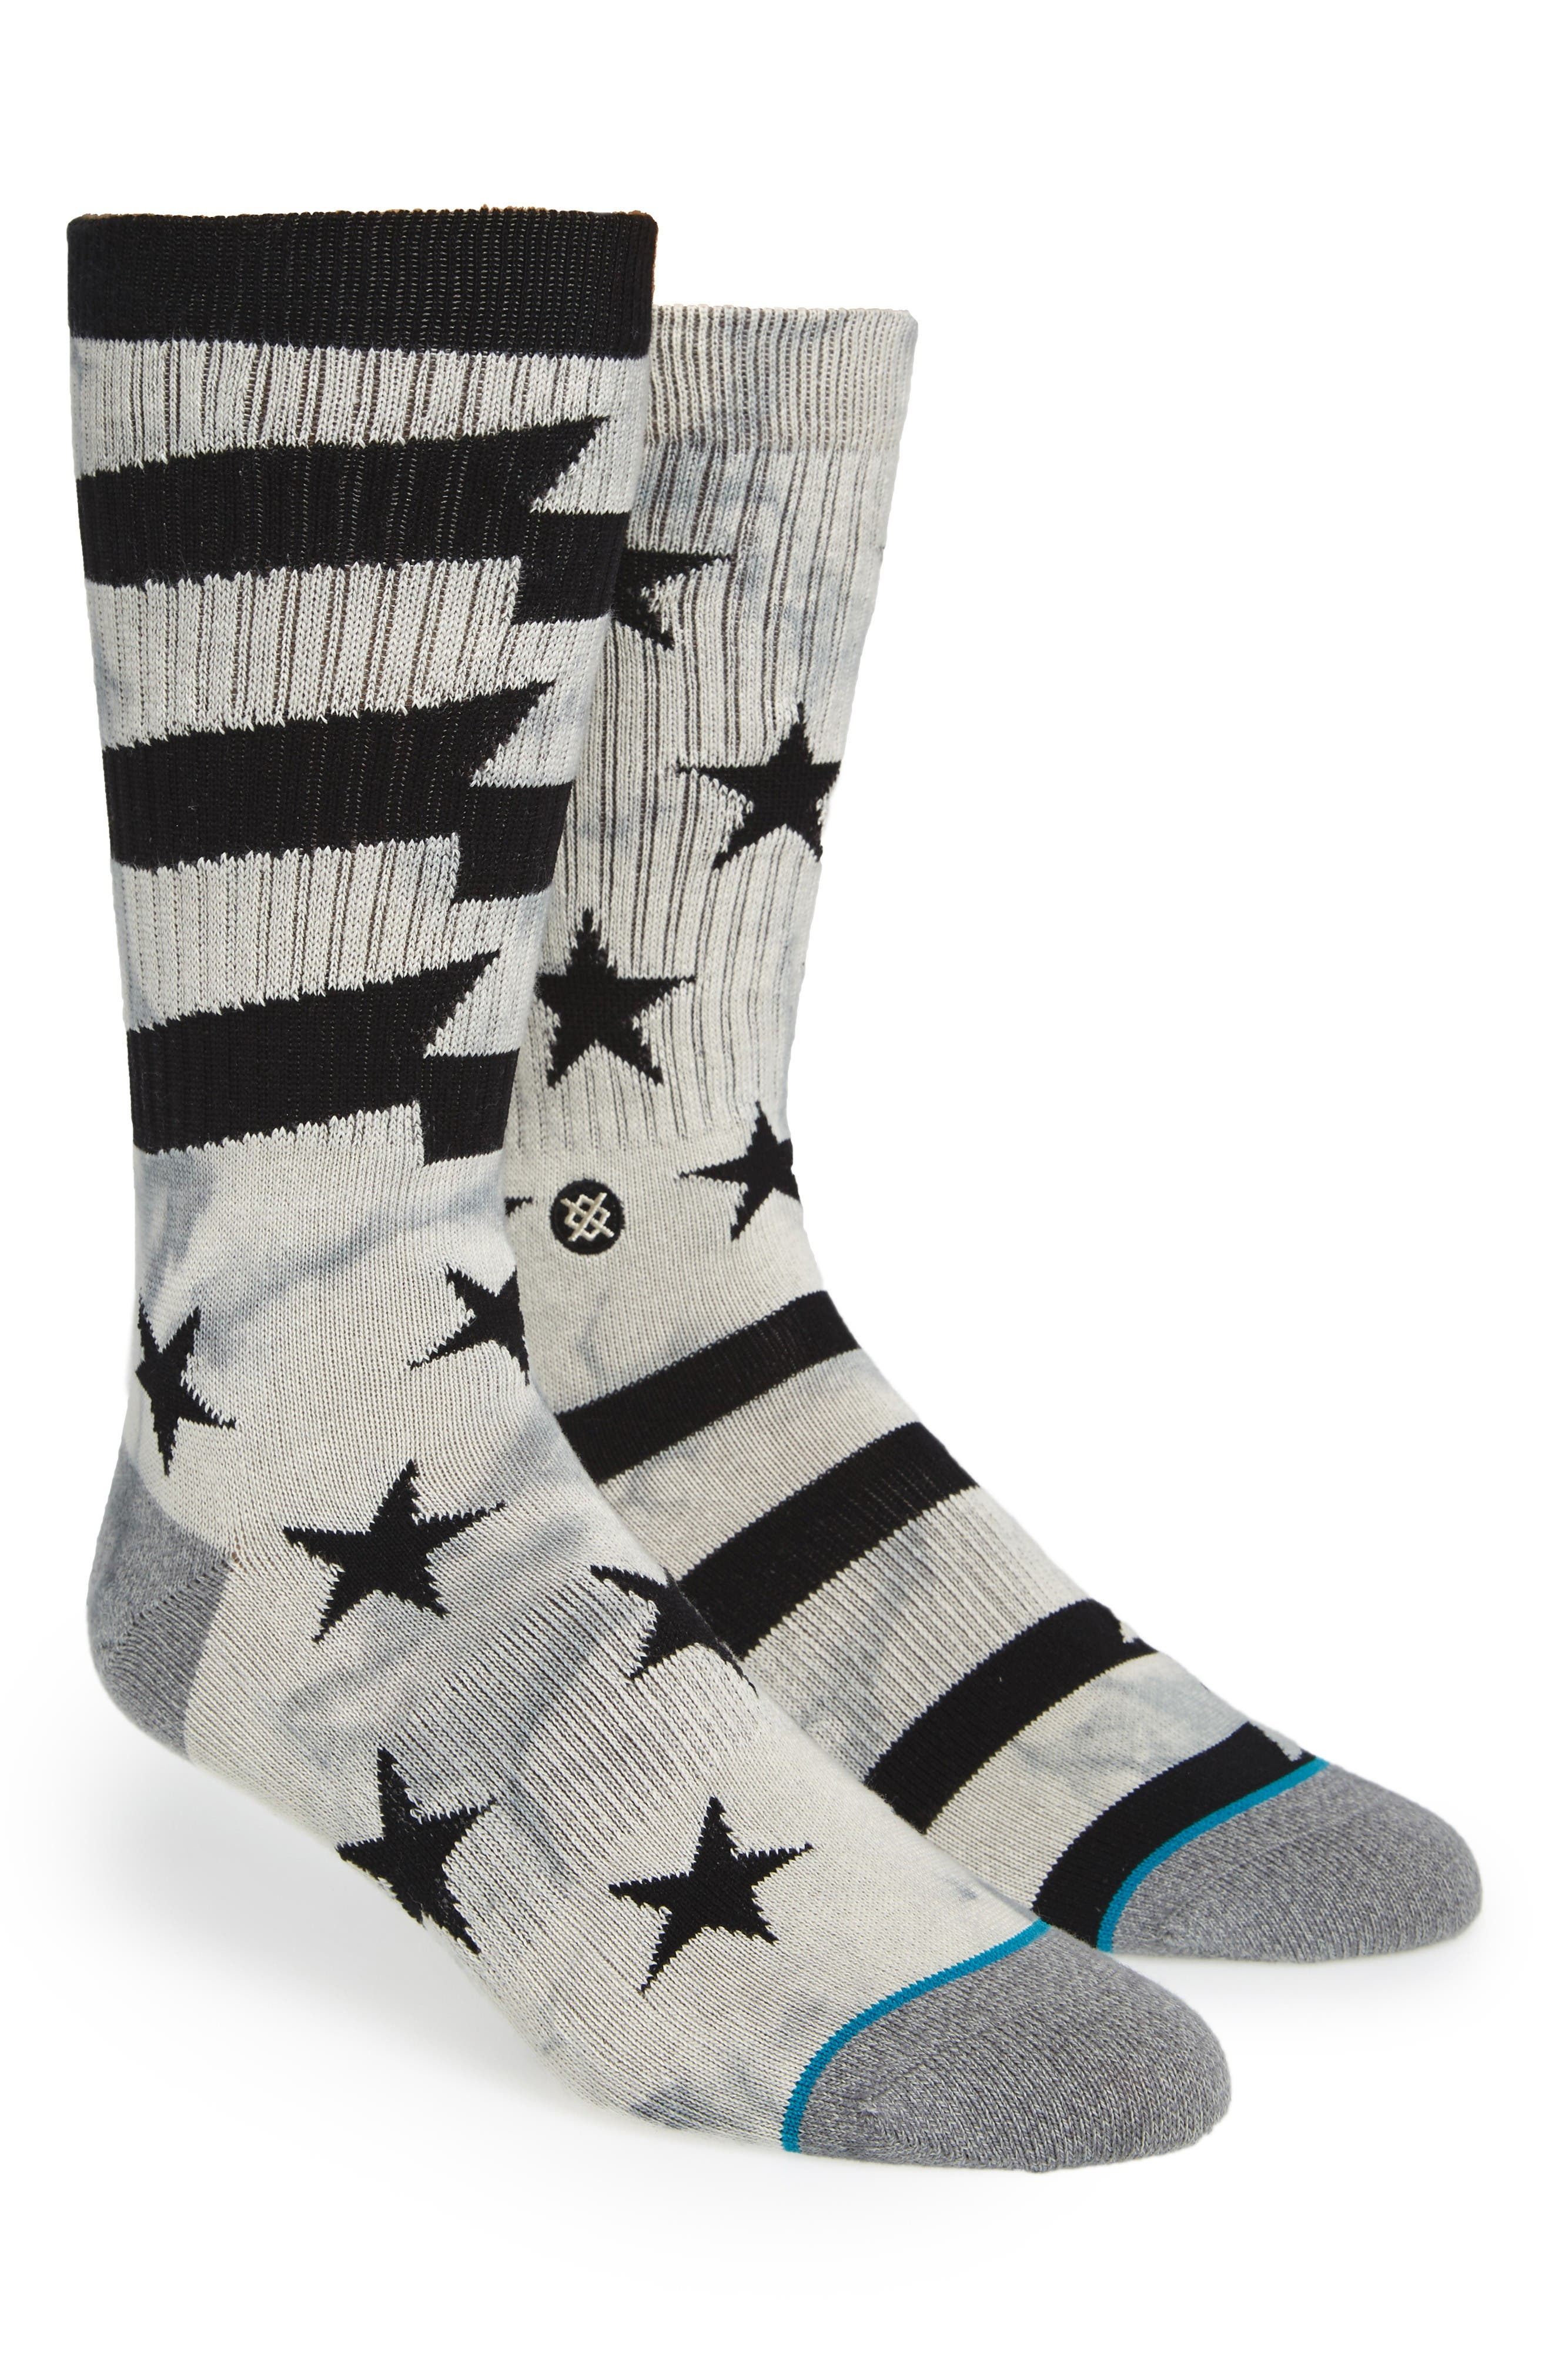 Sidereal Crew Socks,                         Main,                         color, Grey